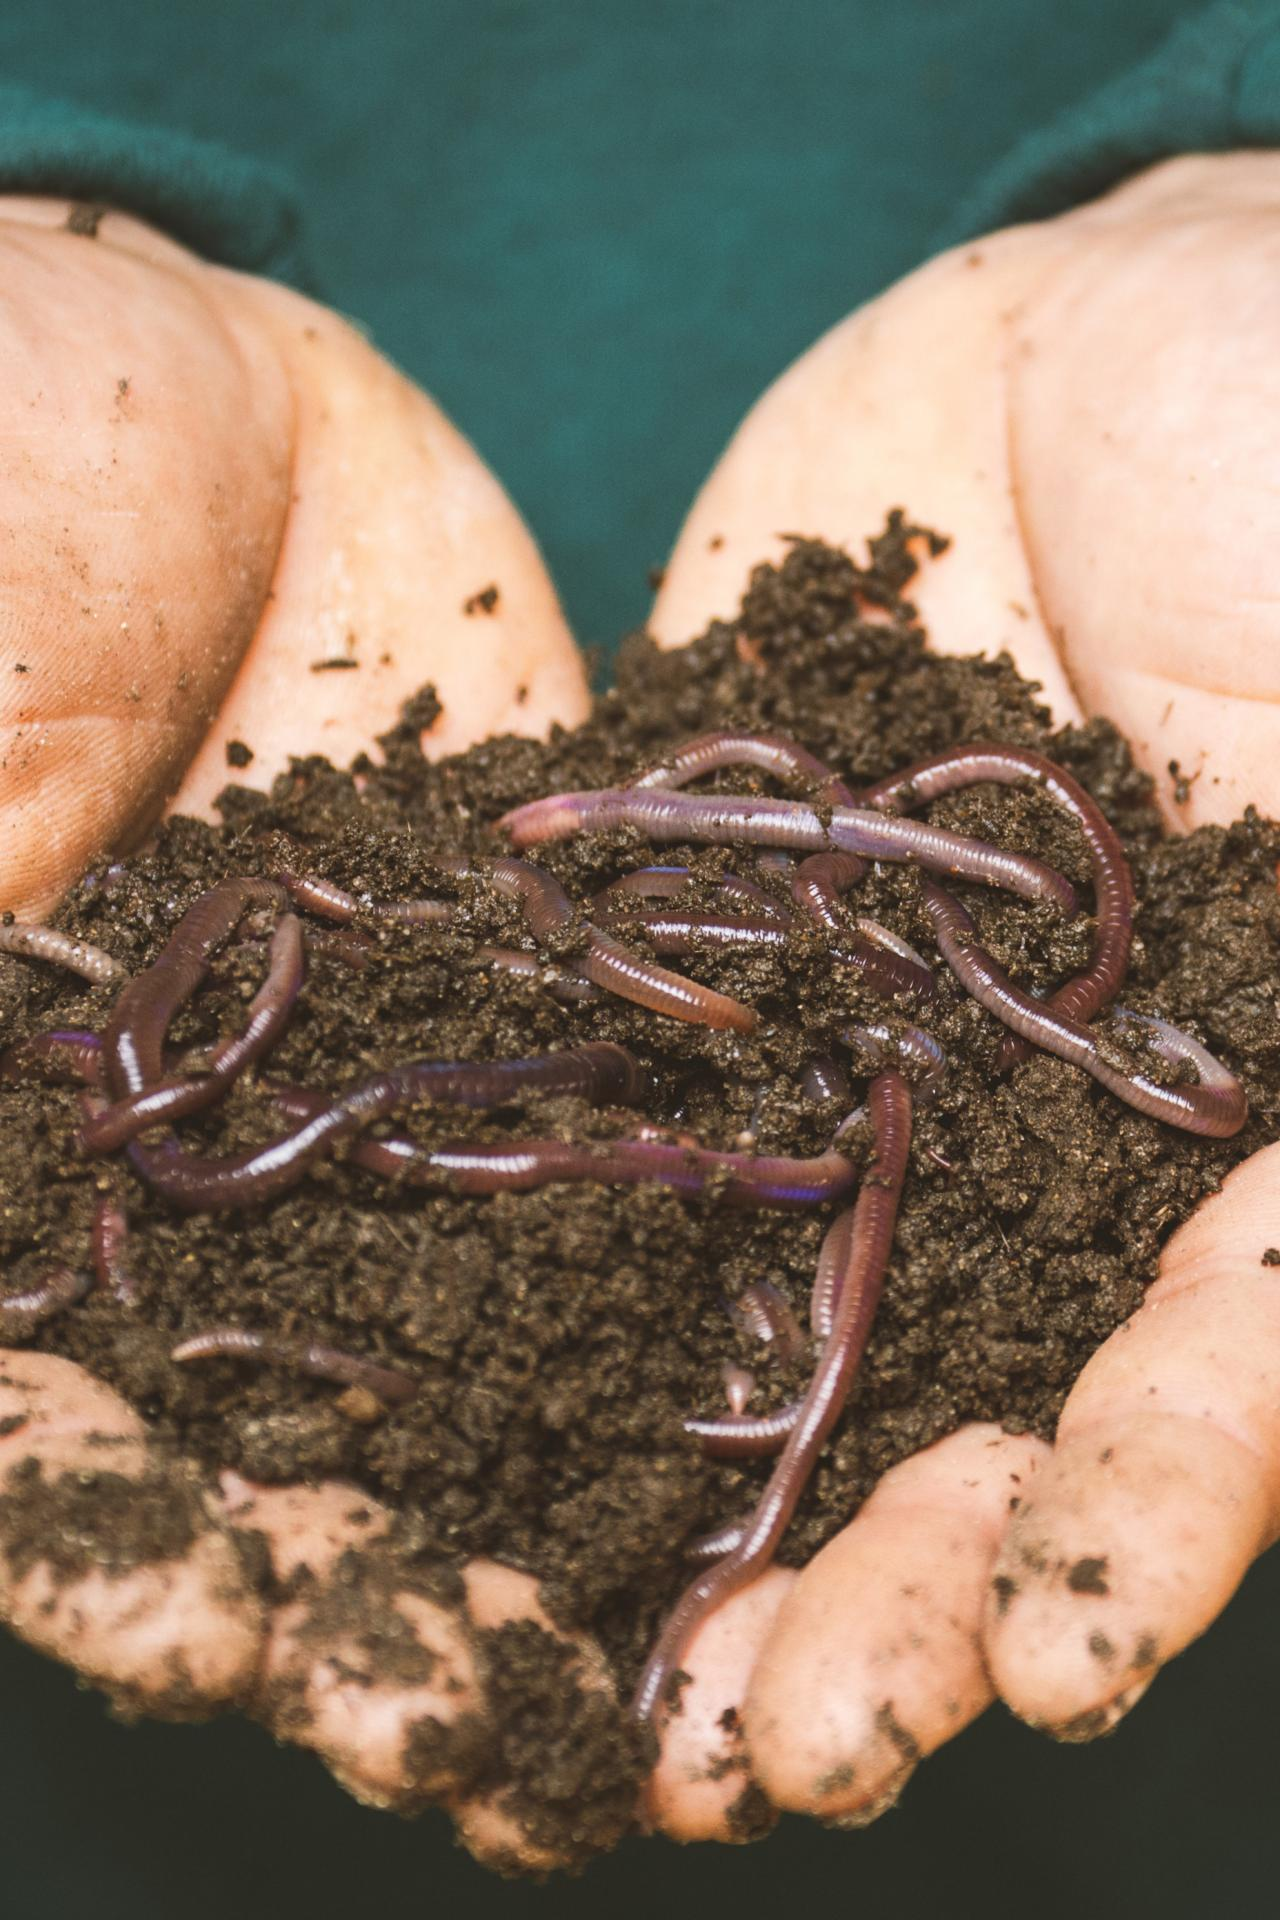 person-holding-dirt-and-worms-in-hands